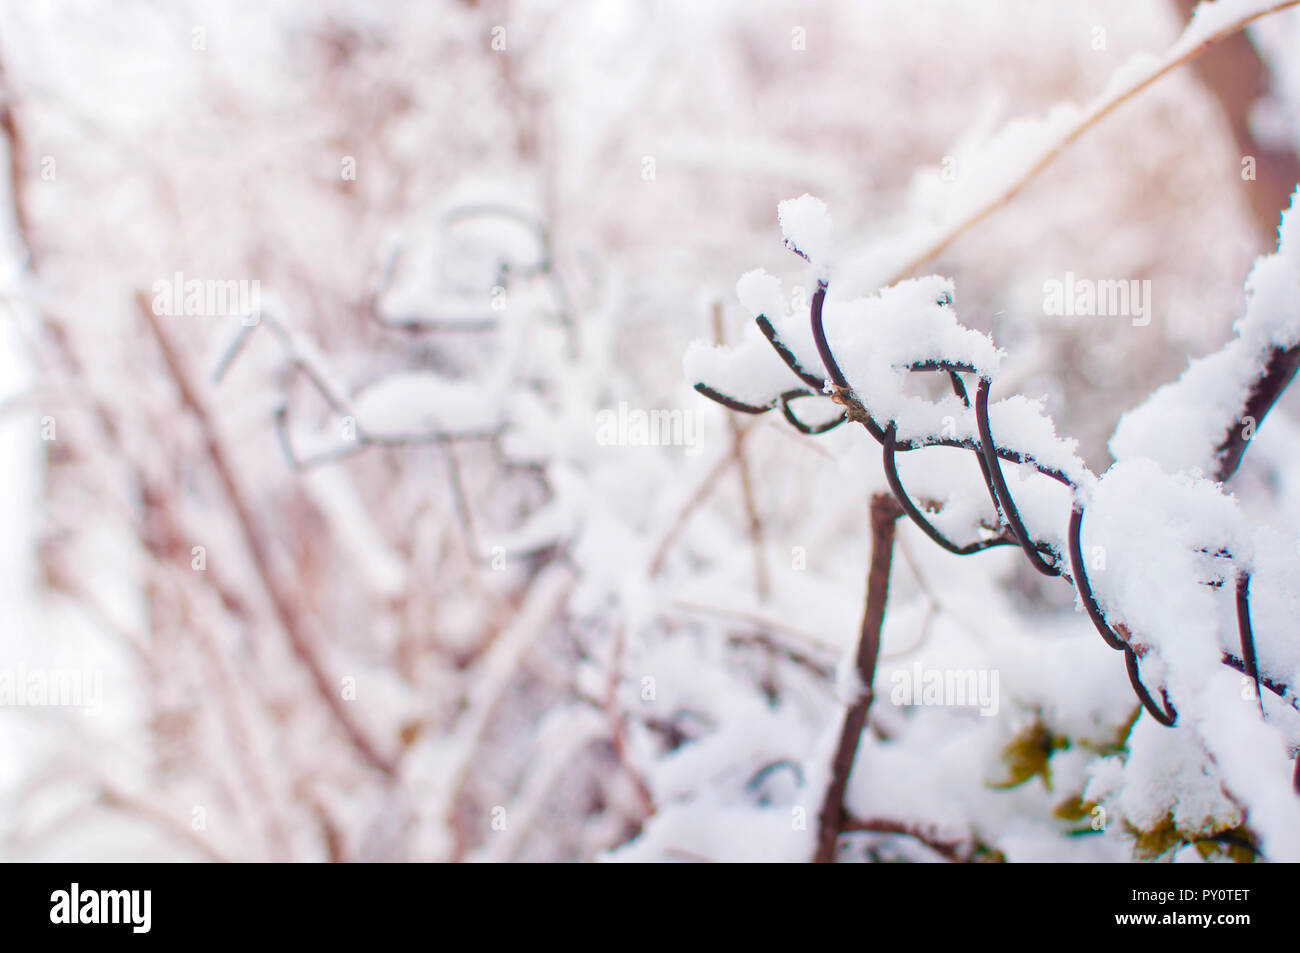 Closeup of a crooked piece of mesh fence covered in a thick layer of white fresh fluffy snow against a blurred orange background with branches. Cold w - Stock Image